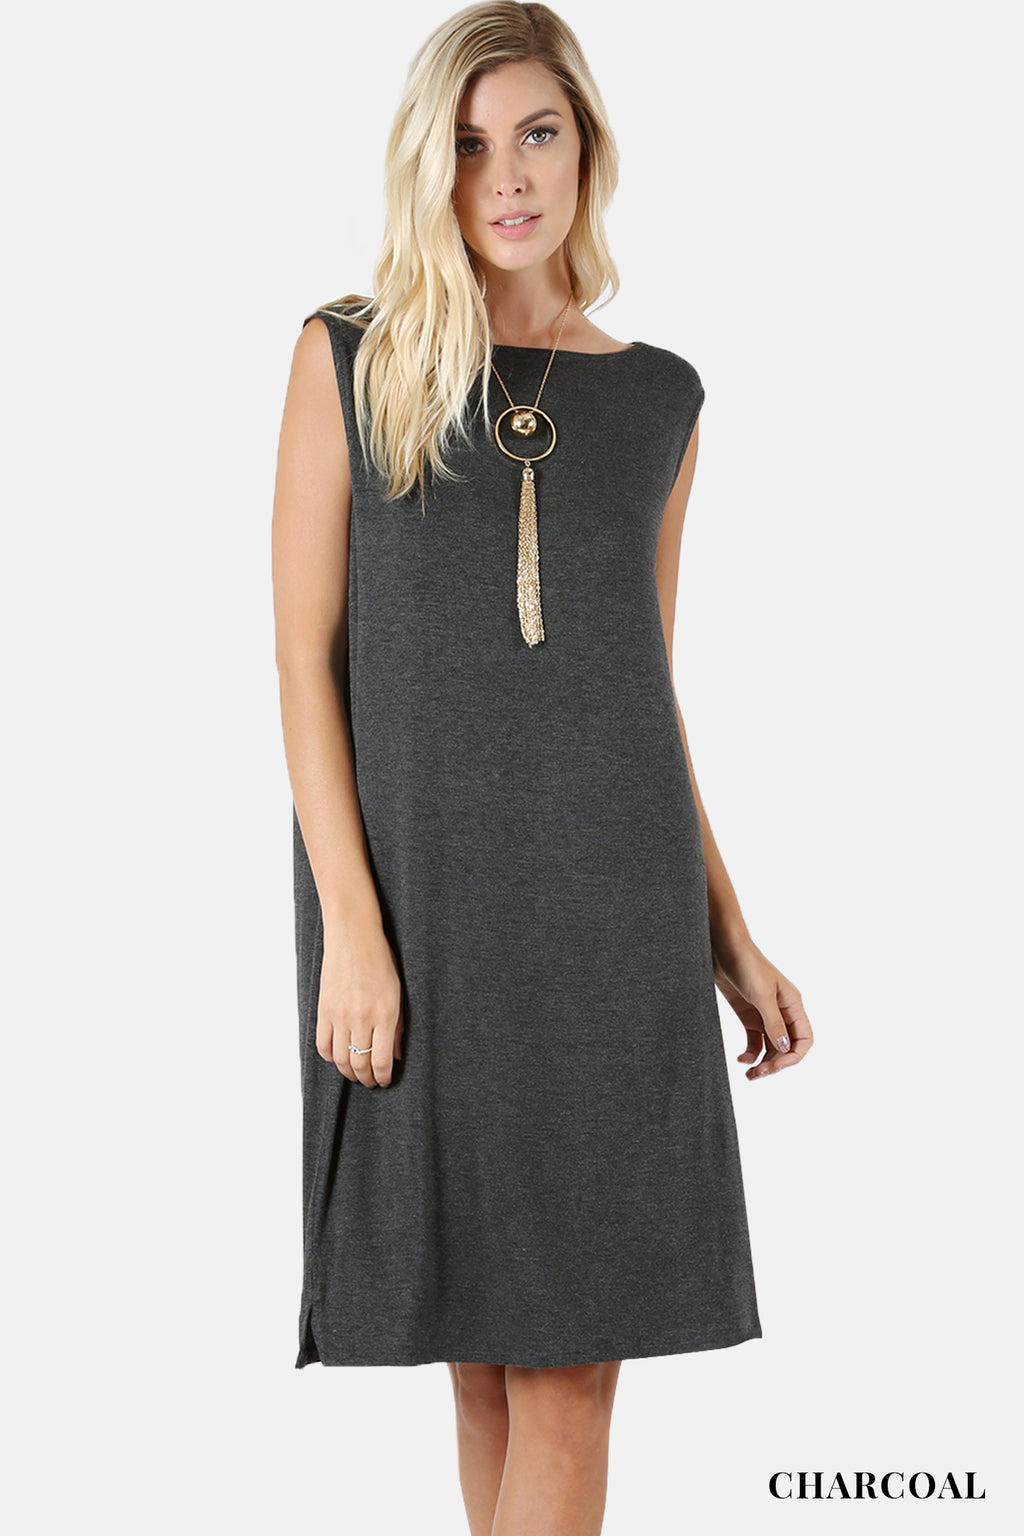 PREMIUM RAYON COMFY FIT KNEE LENGTH TANK DRESS